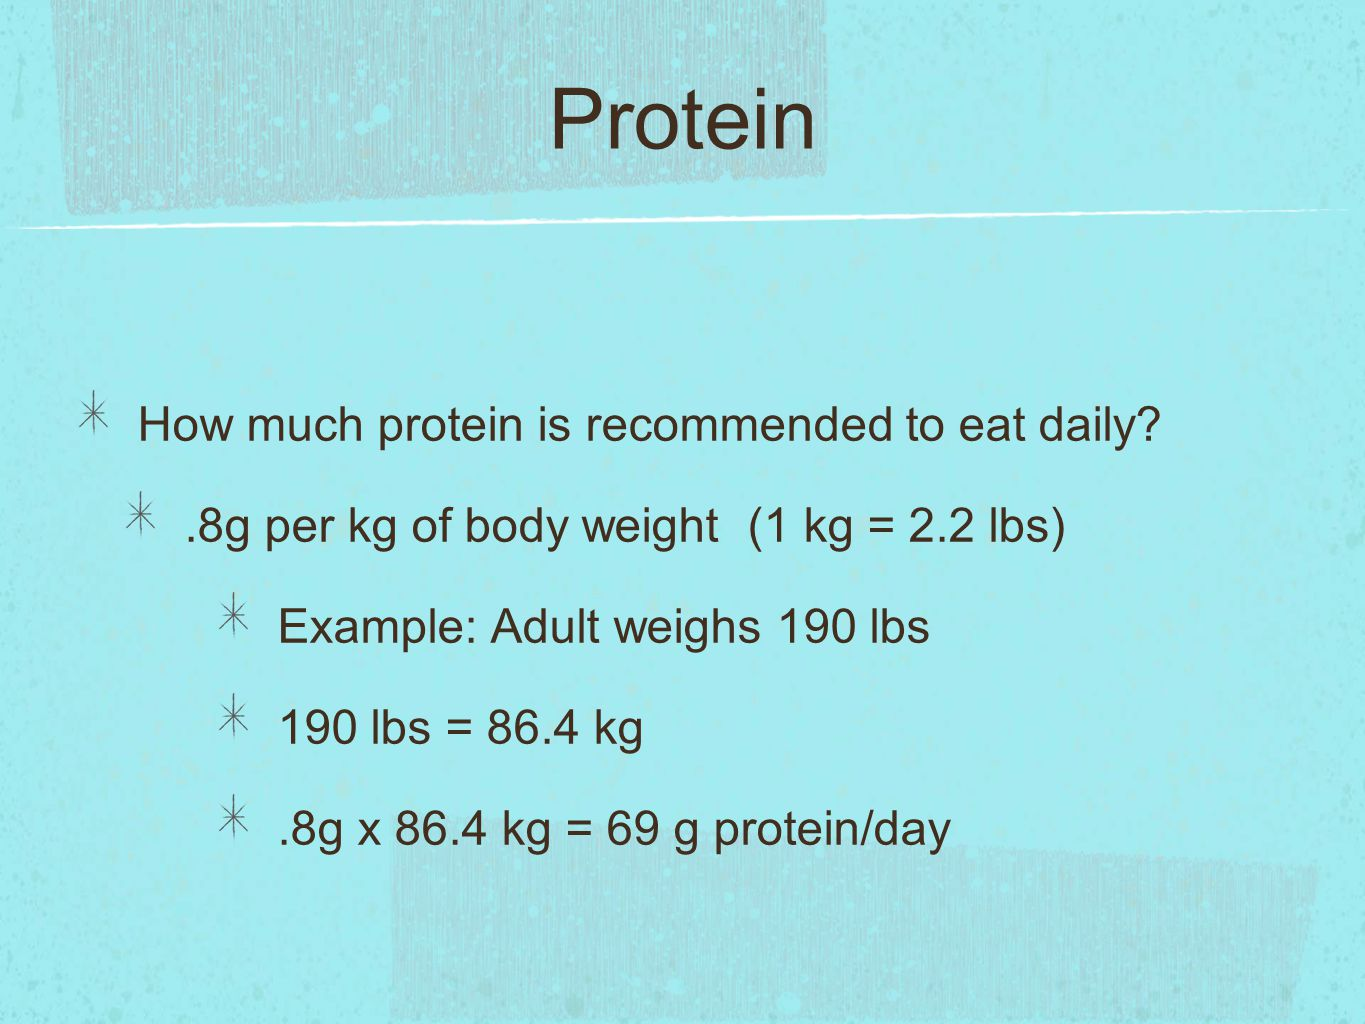 Protein How much protein is recommended to eat daily .8g per kg of body weight (1 kg = 2.2 lbs) Example: Adult weighs 190 lbs 190 lbs = 86.4 kg.8g x 86.4 kg = 69 g protein/day